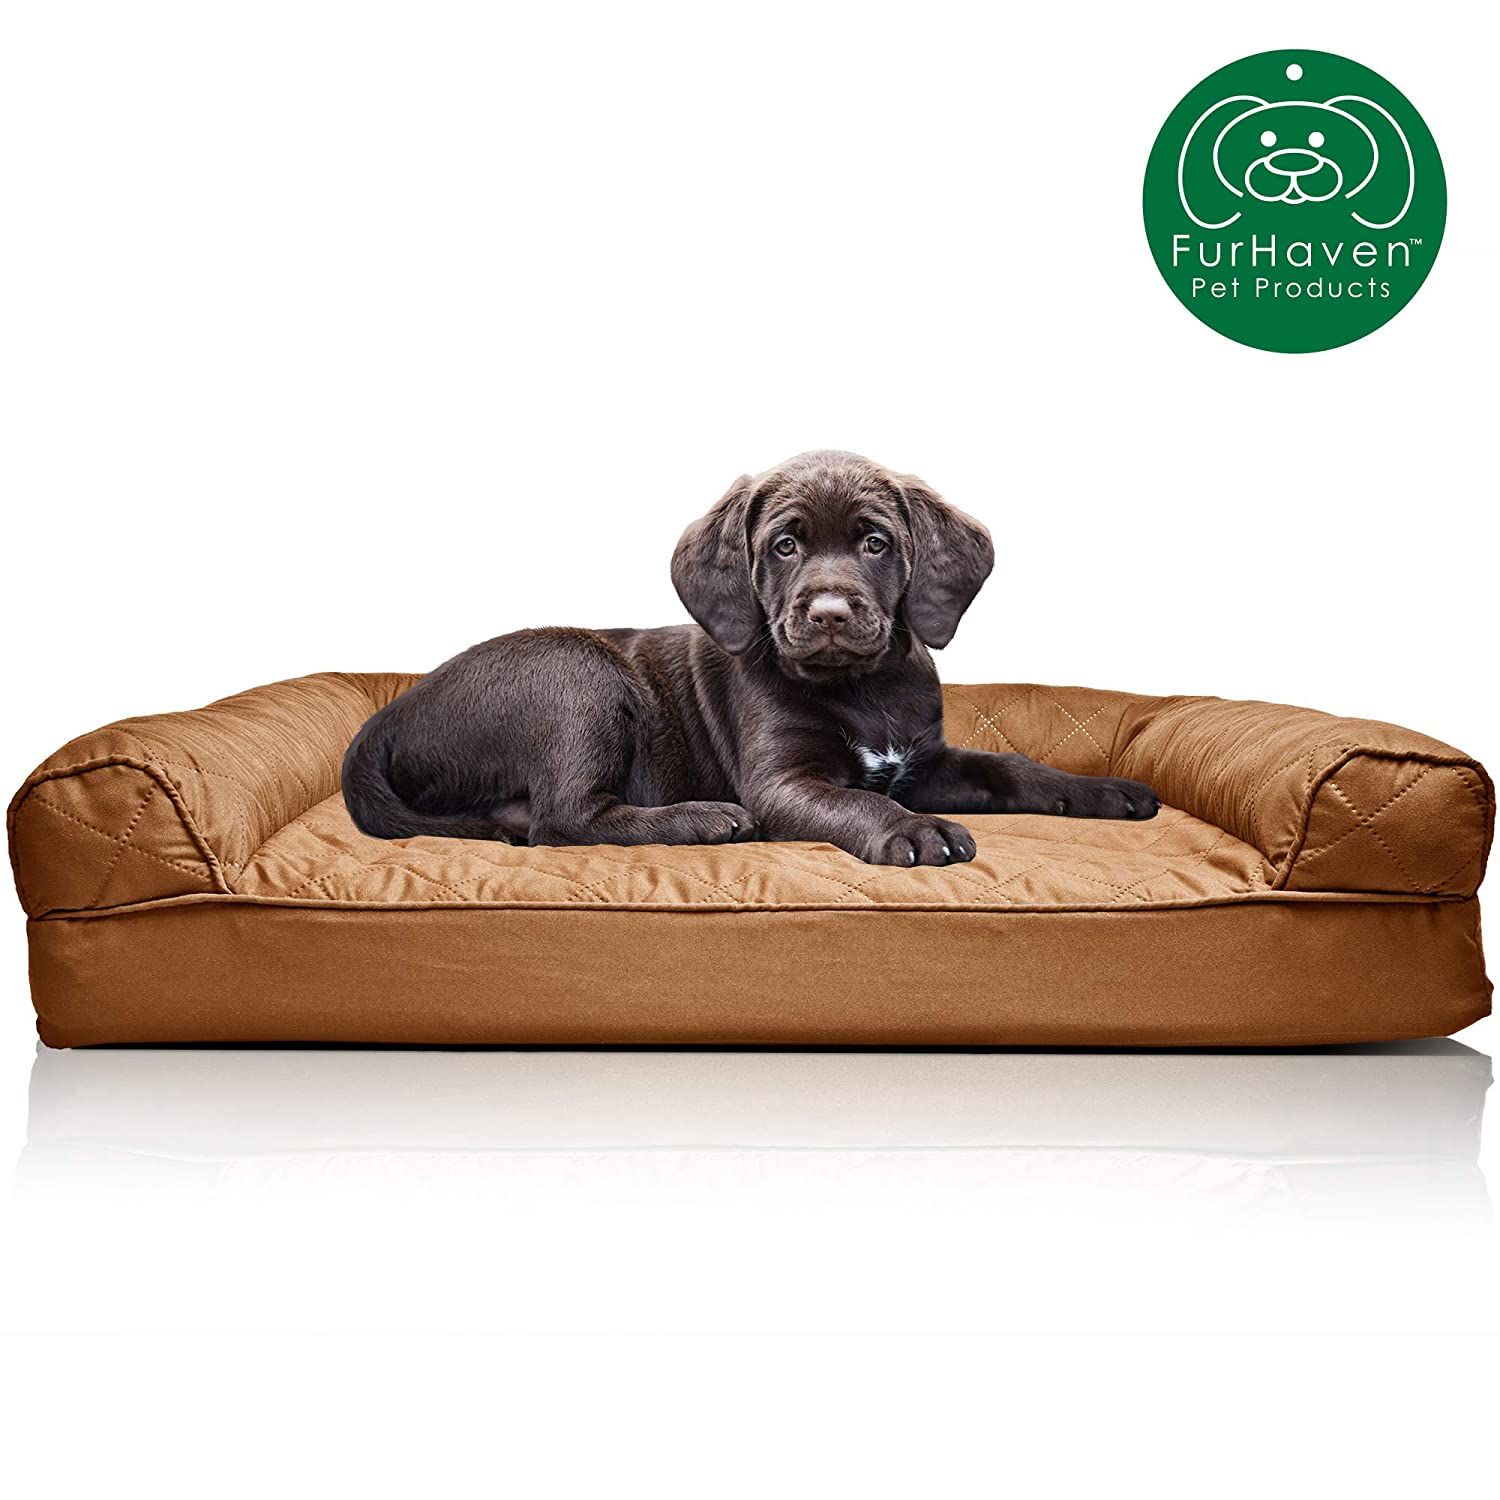 Brilliant Furhaven Pet Dog Bed Orthopedic Sofa Style Traditional Living Room Couch Pet Bed W Removable Cover For Dogs Cats Available In Multiple Colors Gmtry Best Dining Table And Chair Ideas Images Gmtryco